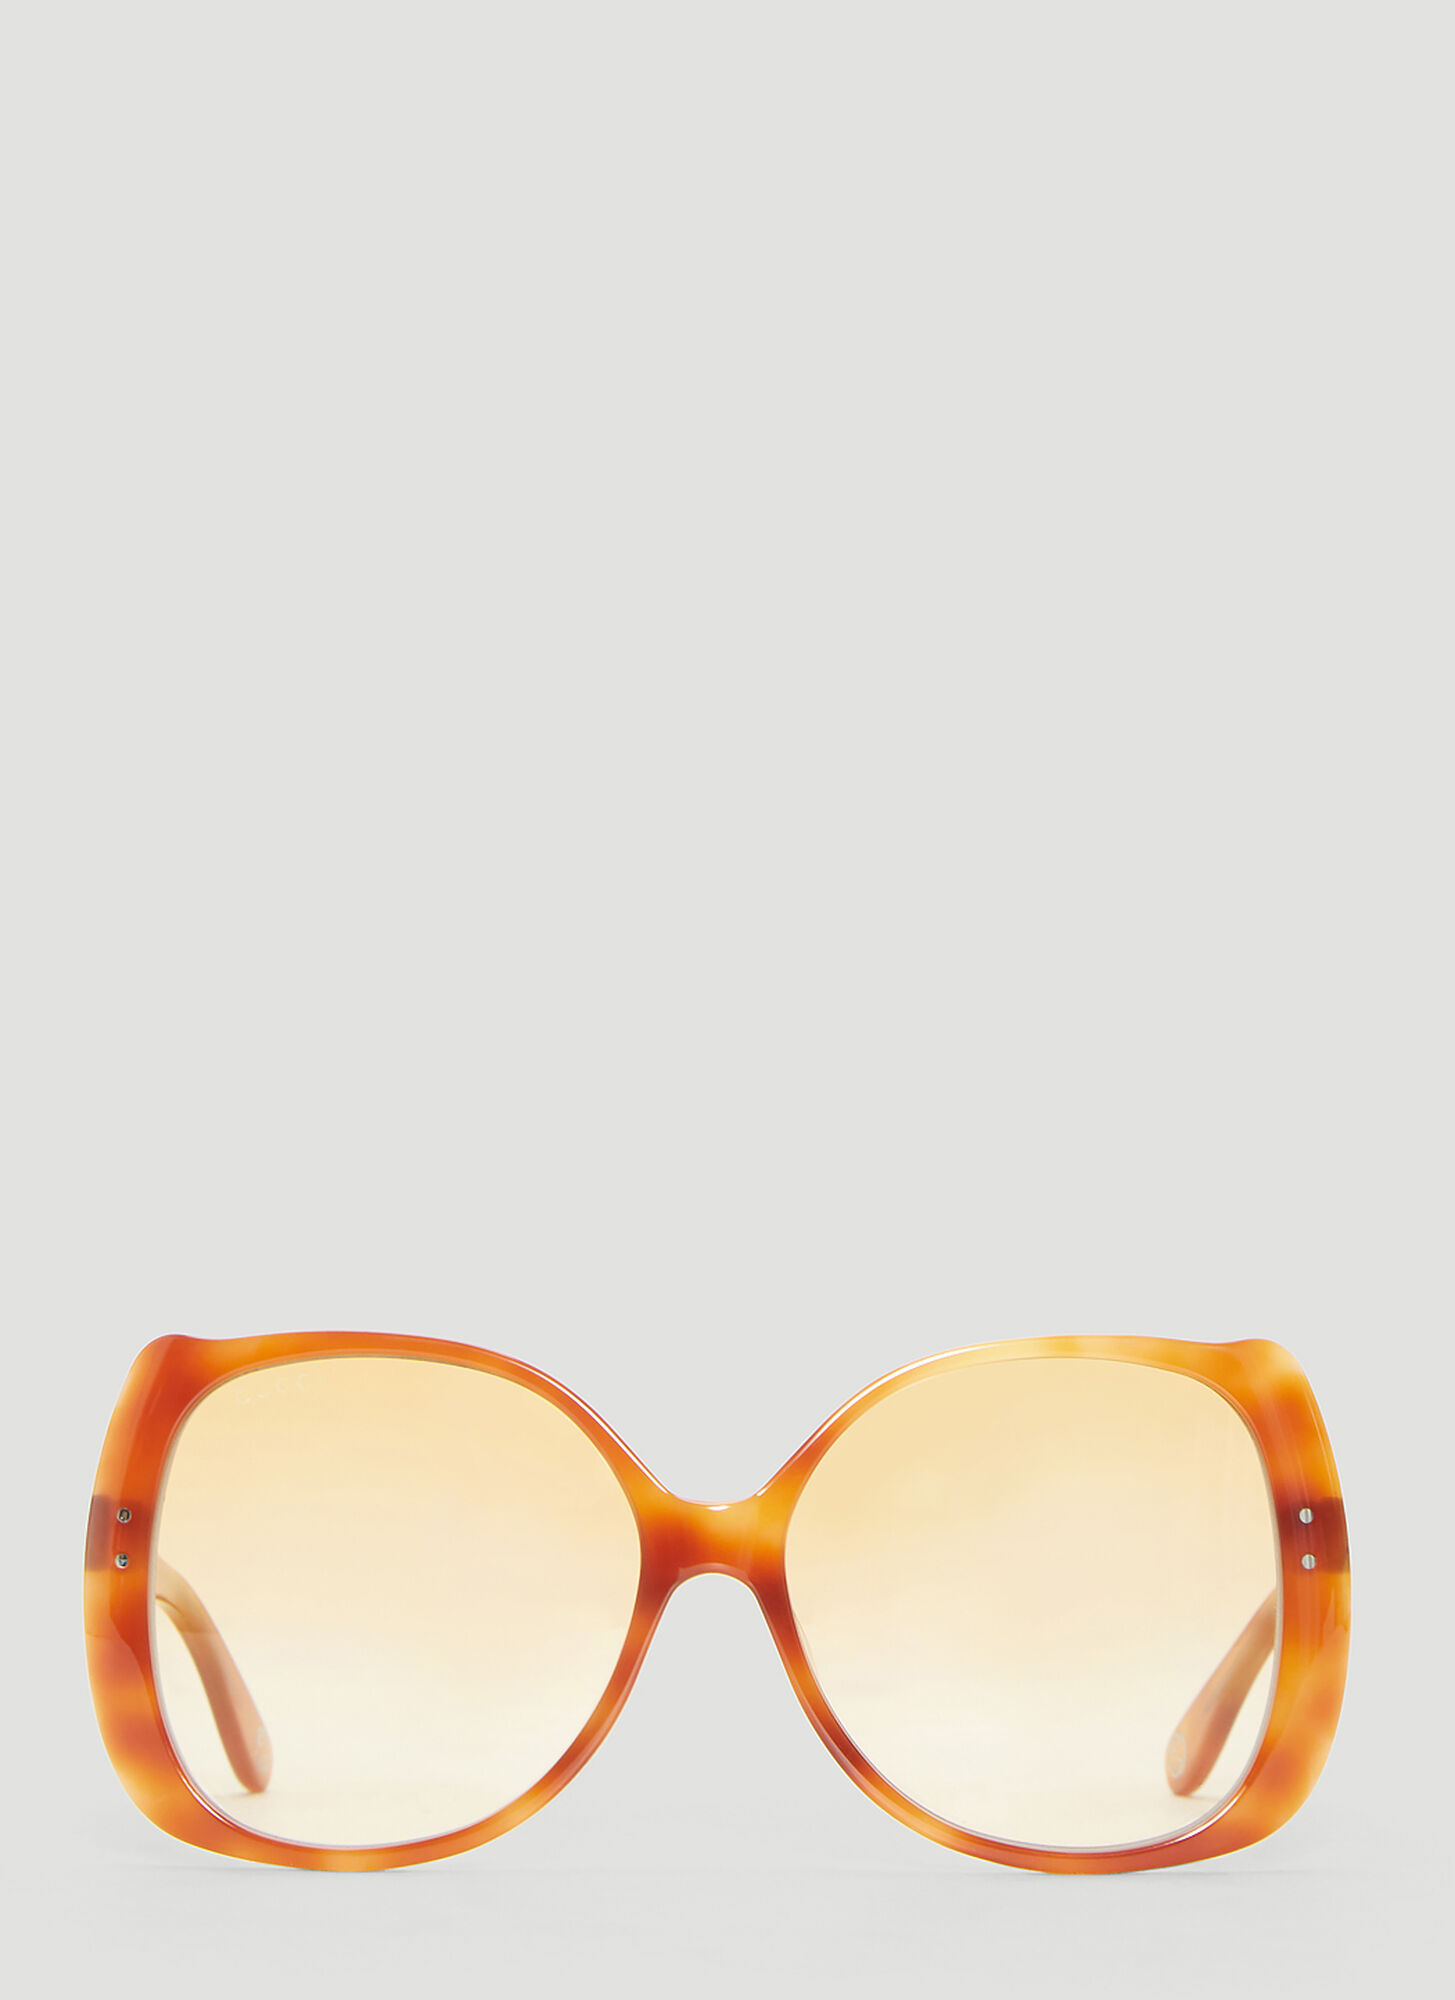 Gucci Oversized Rounded Square Frame Sunglasses in Brown